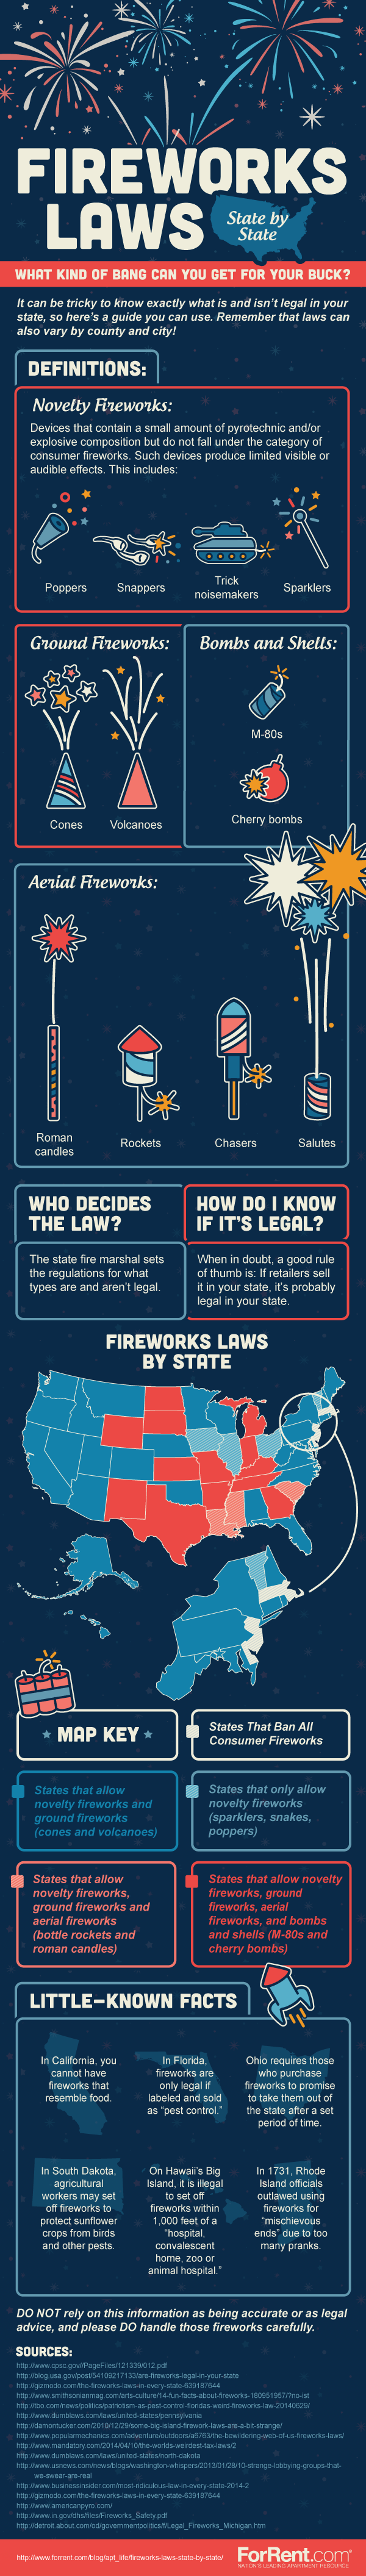 Fireworks Laws State By State